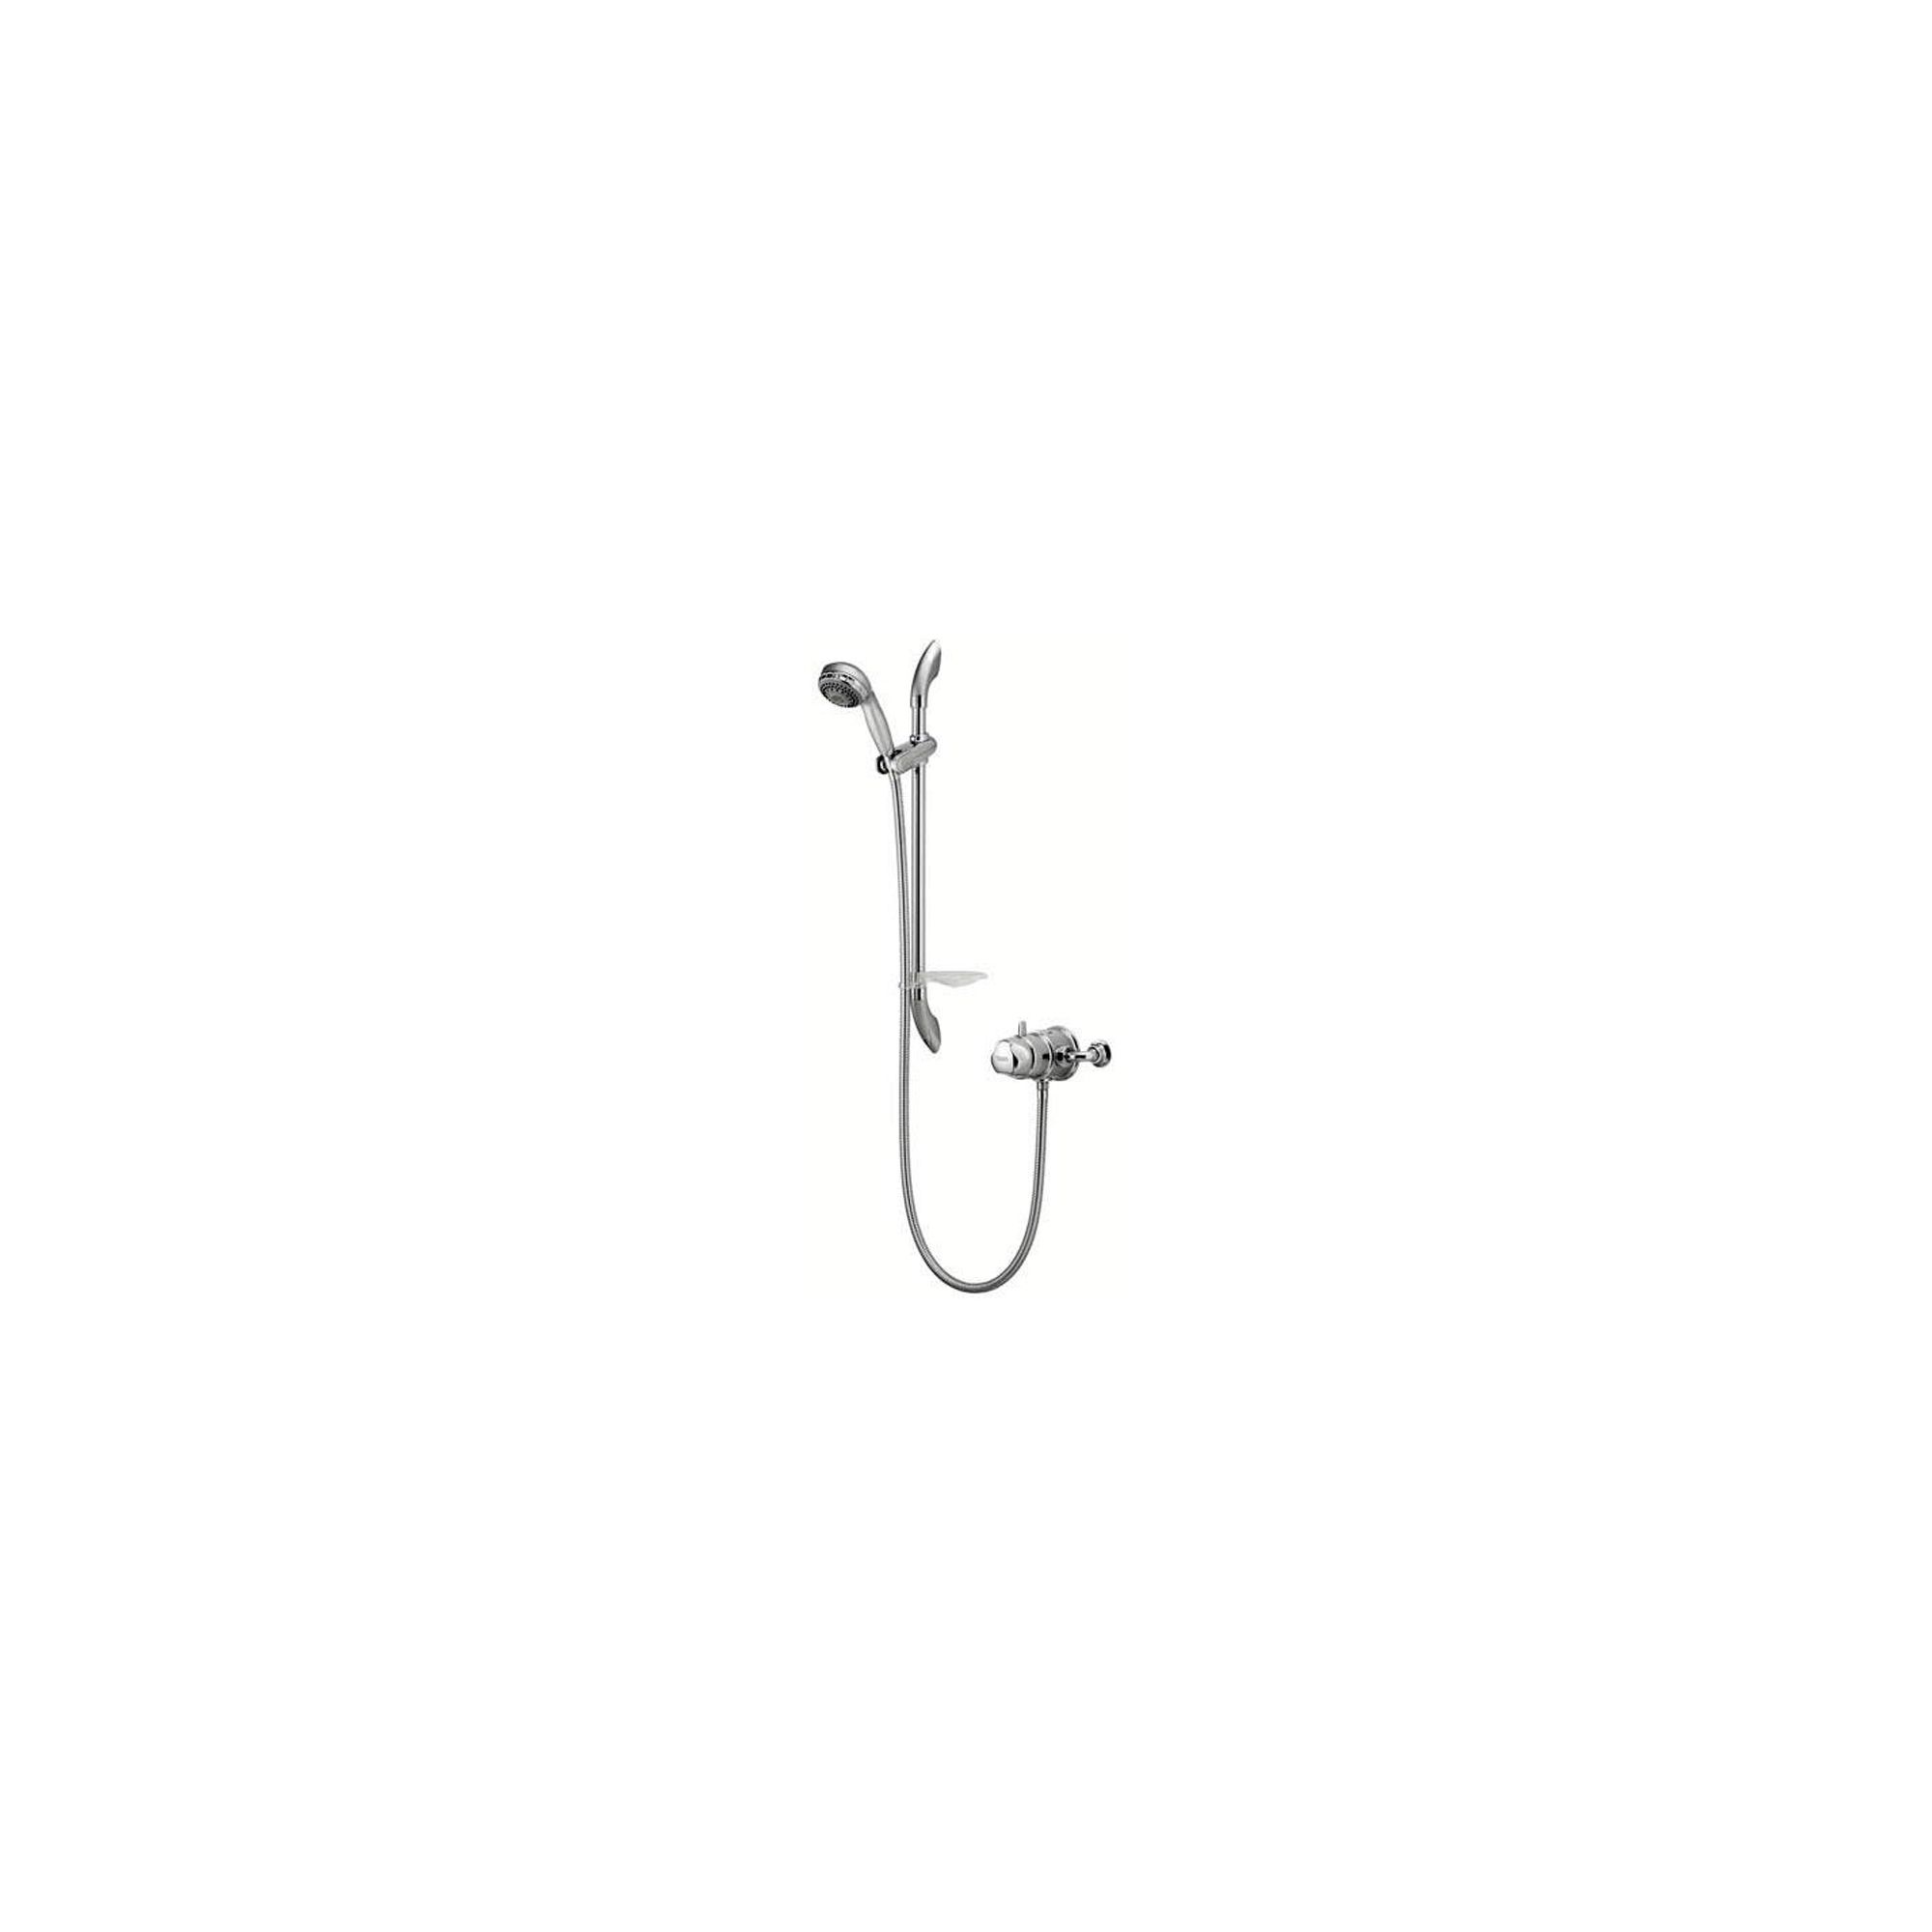 Aqualisa Aquavalve 700 Exposed Shower Valve with Adjustable Shower Head Chrome at Tesco Direct